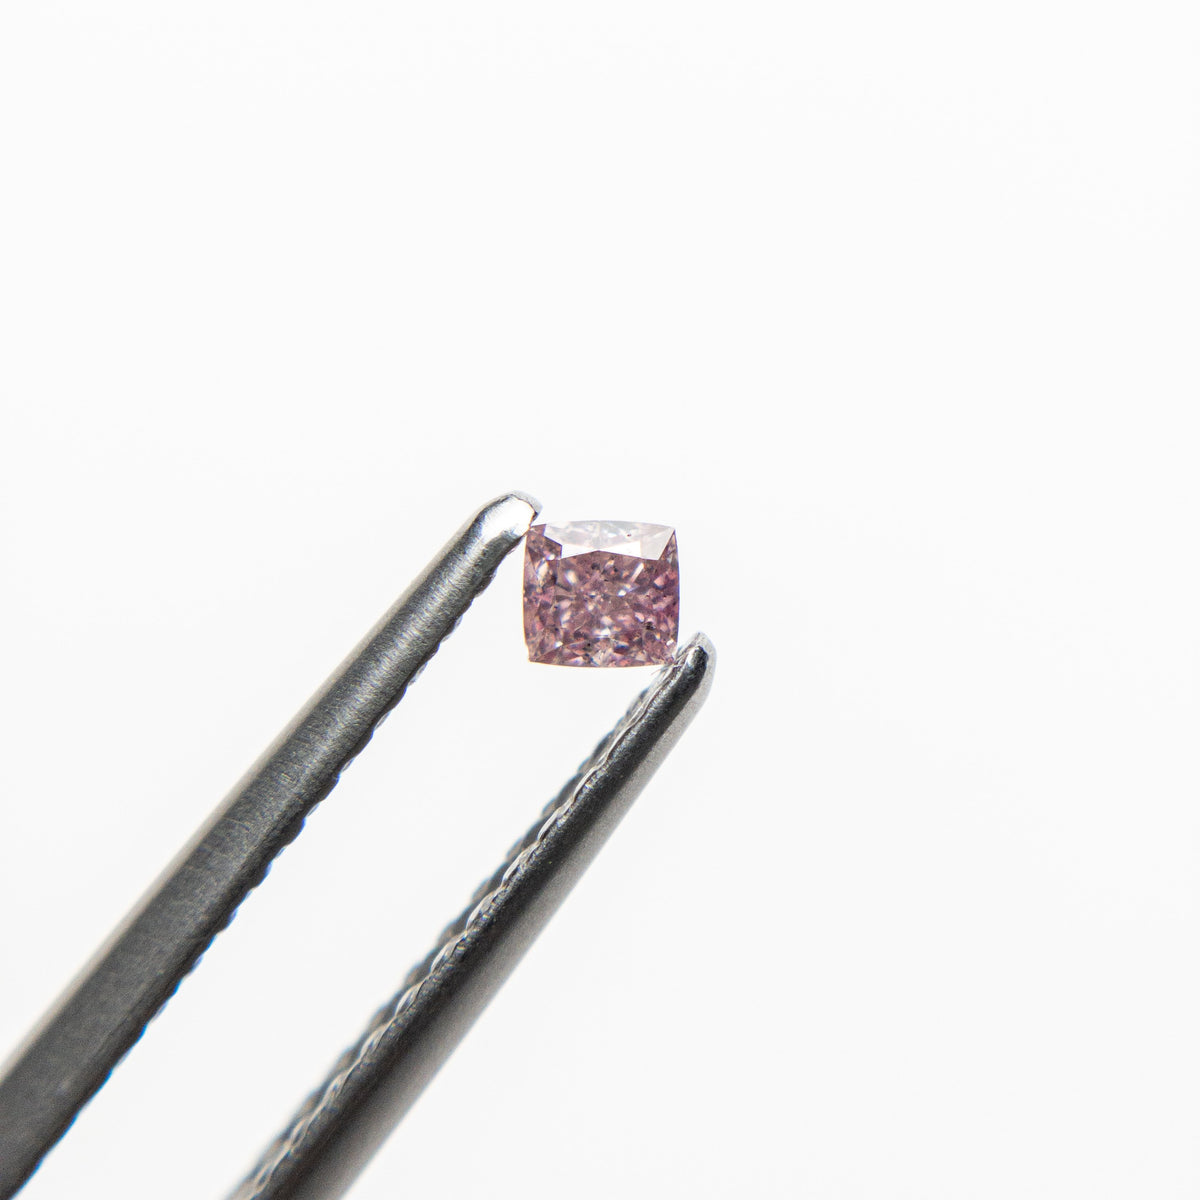 0.08ct 2.38x2.24x1.58mm Argyle Fancy Intense Purple Pink Cushion Brilliant 18680-05